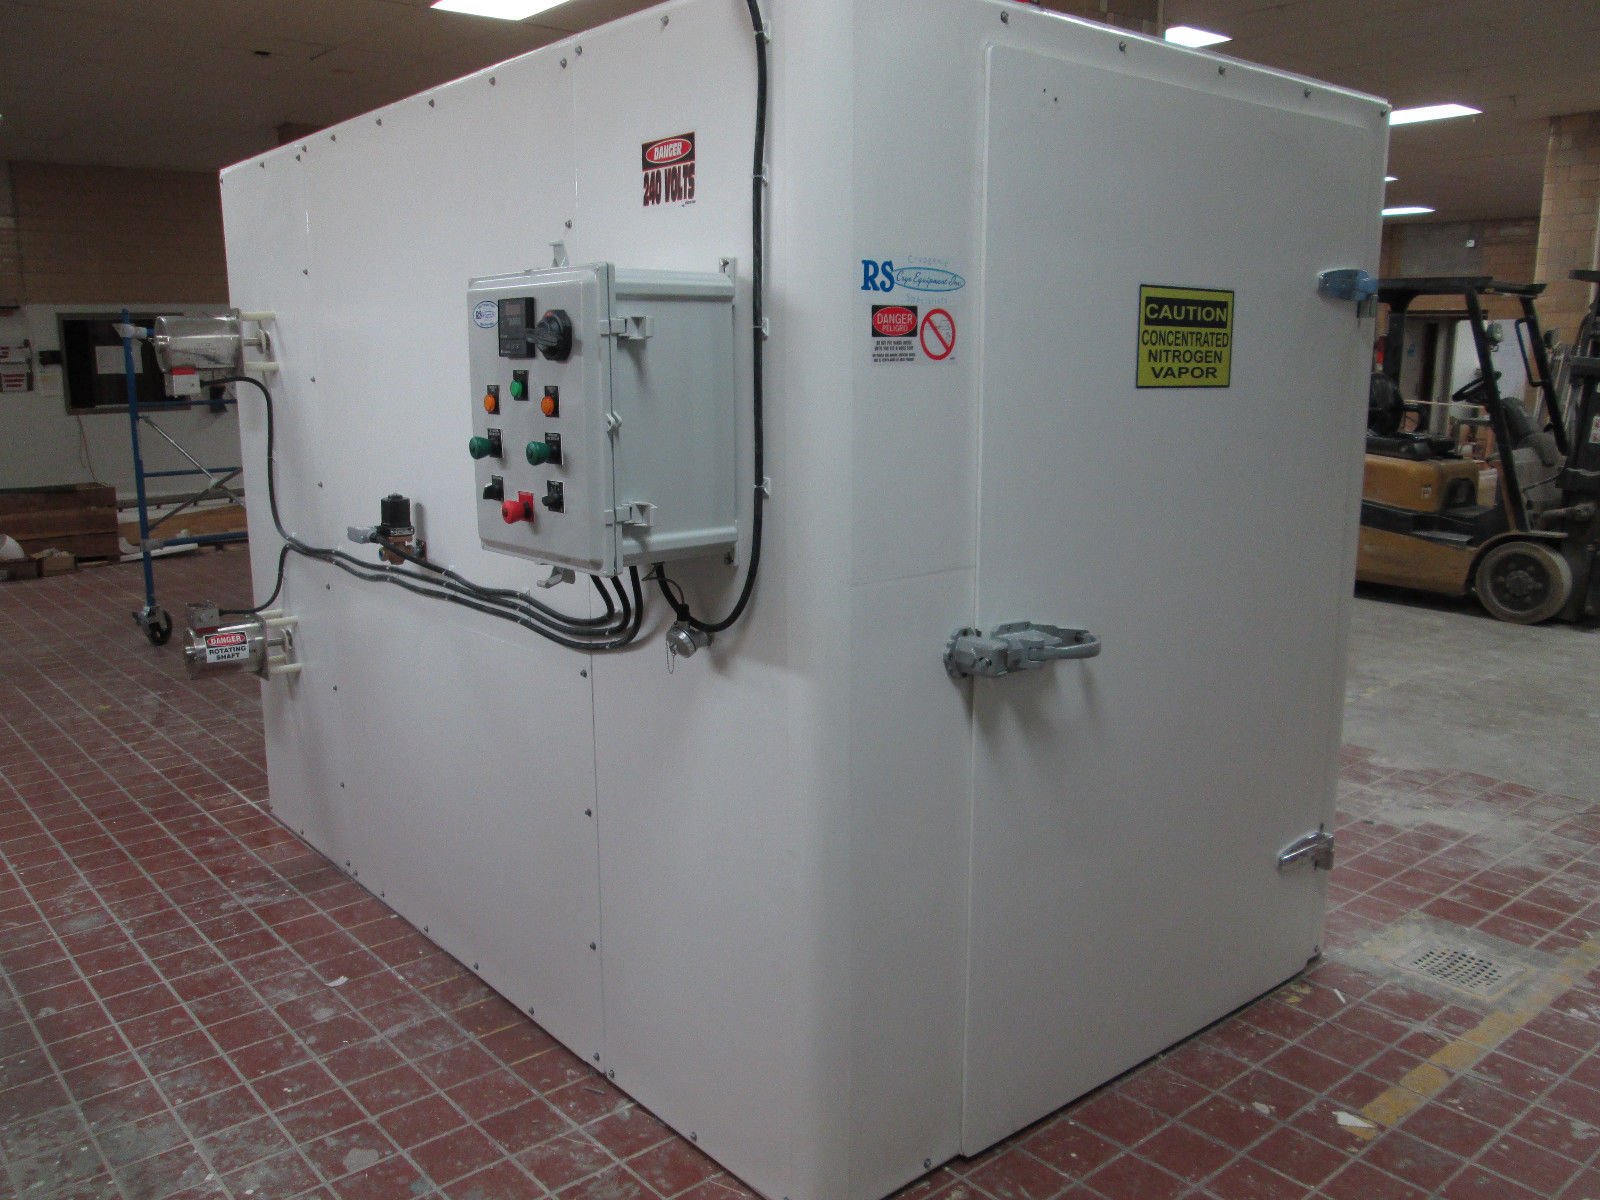 Charmant Cabinet Blast Freezer, Used For Food Processing Or Food Freezing